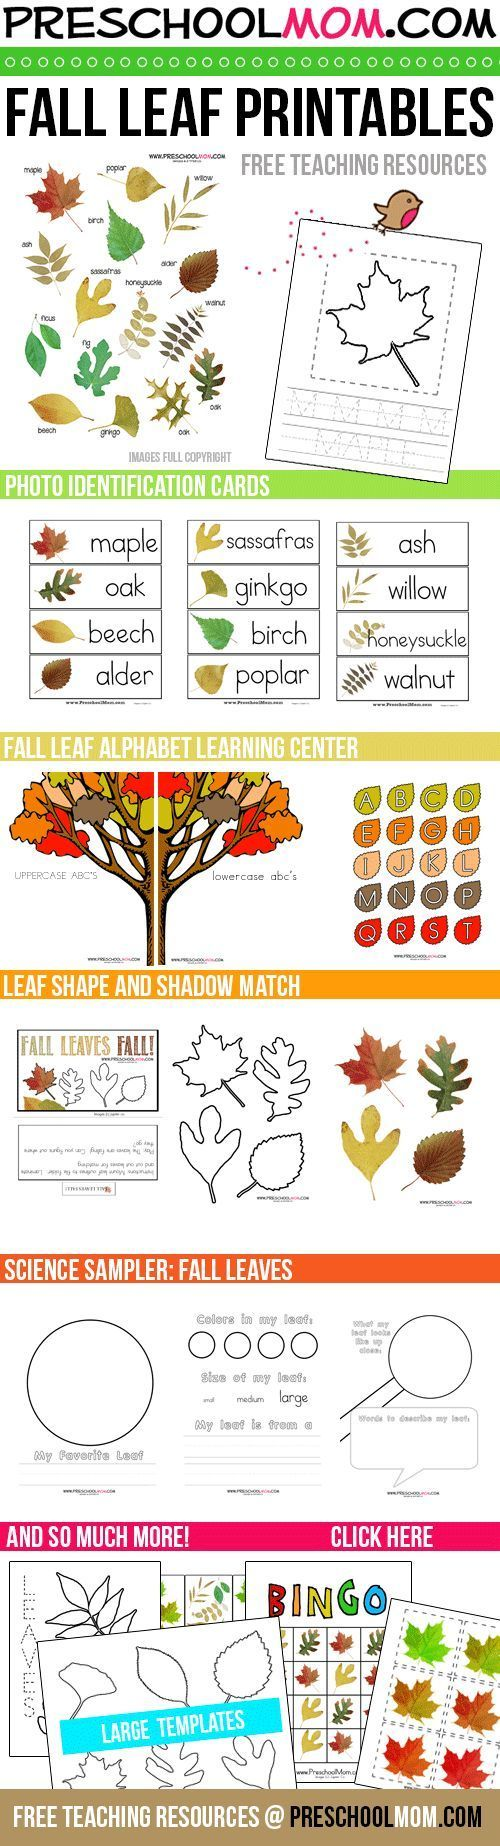 Autumn leaf cutouts templates clipart best - Awesome Free Collection Of Fall Leaf Preschool Printables